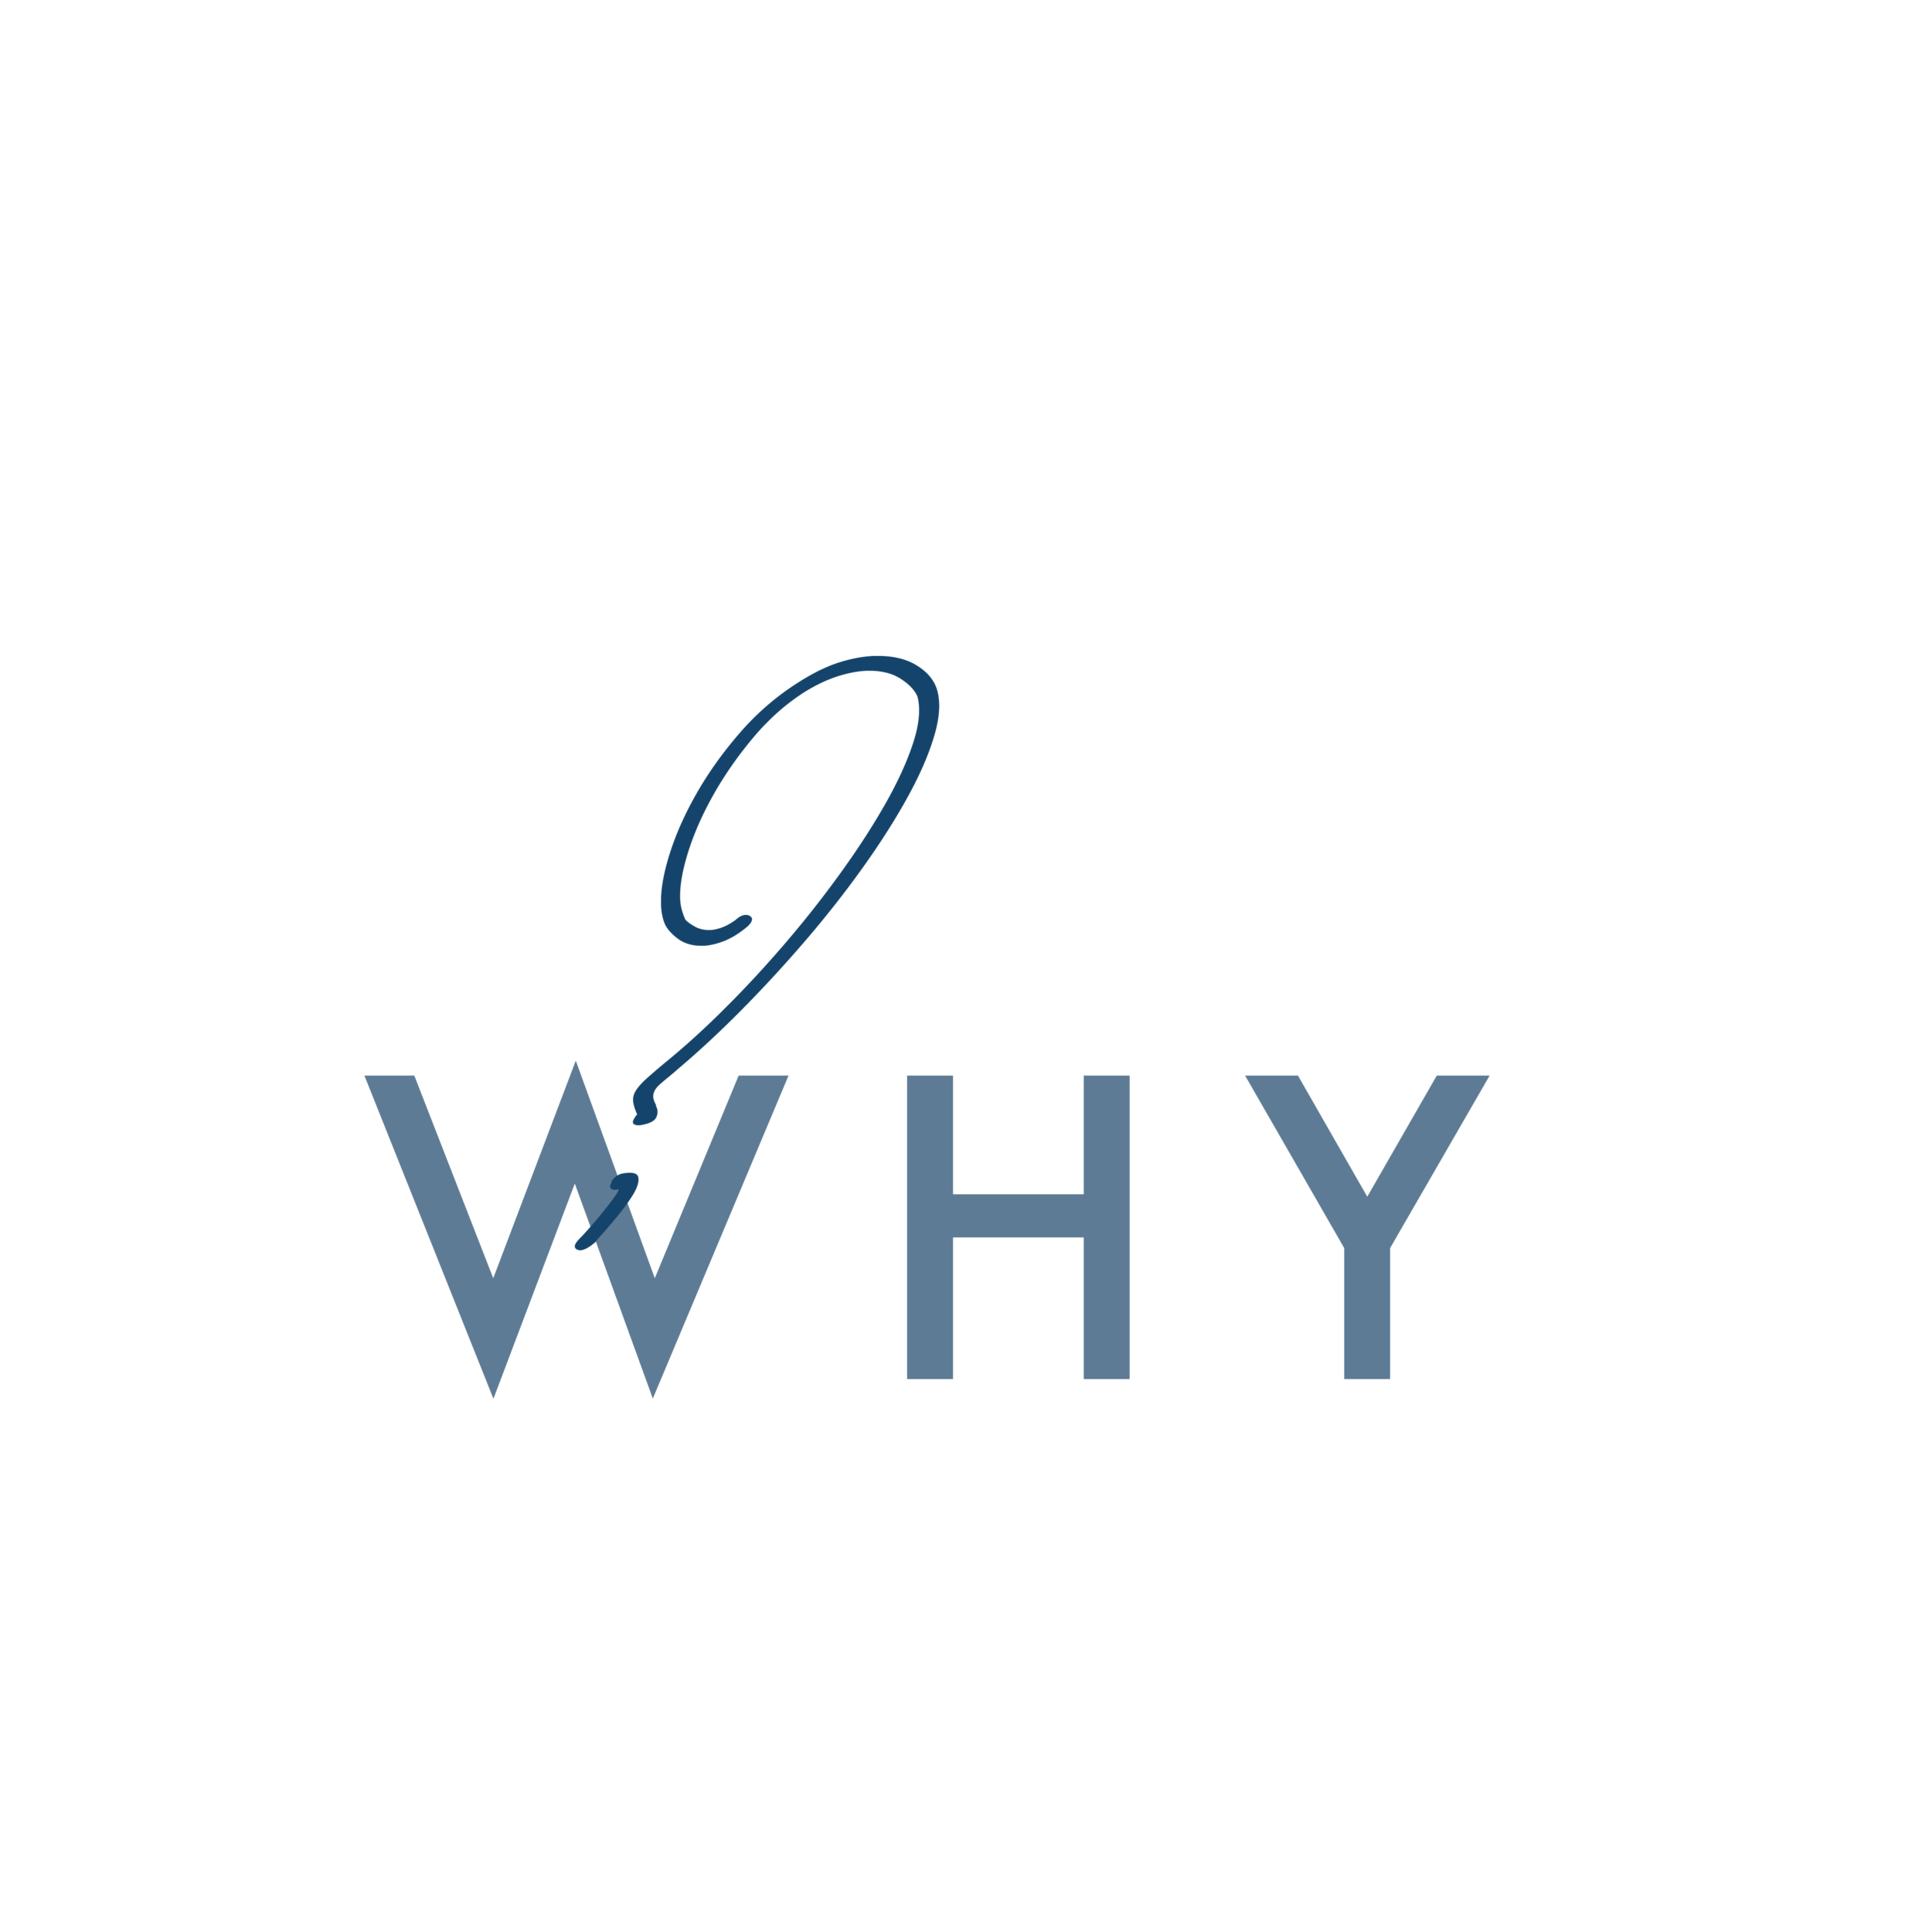 Why-01.png